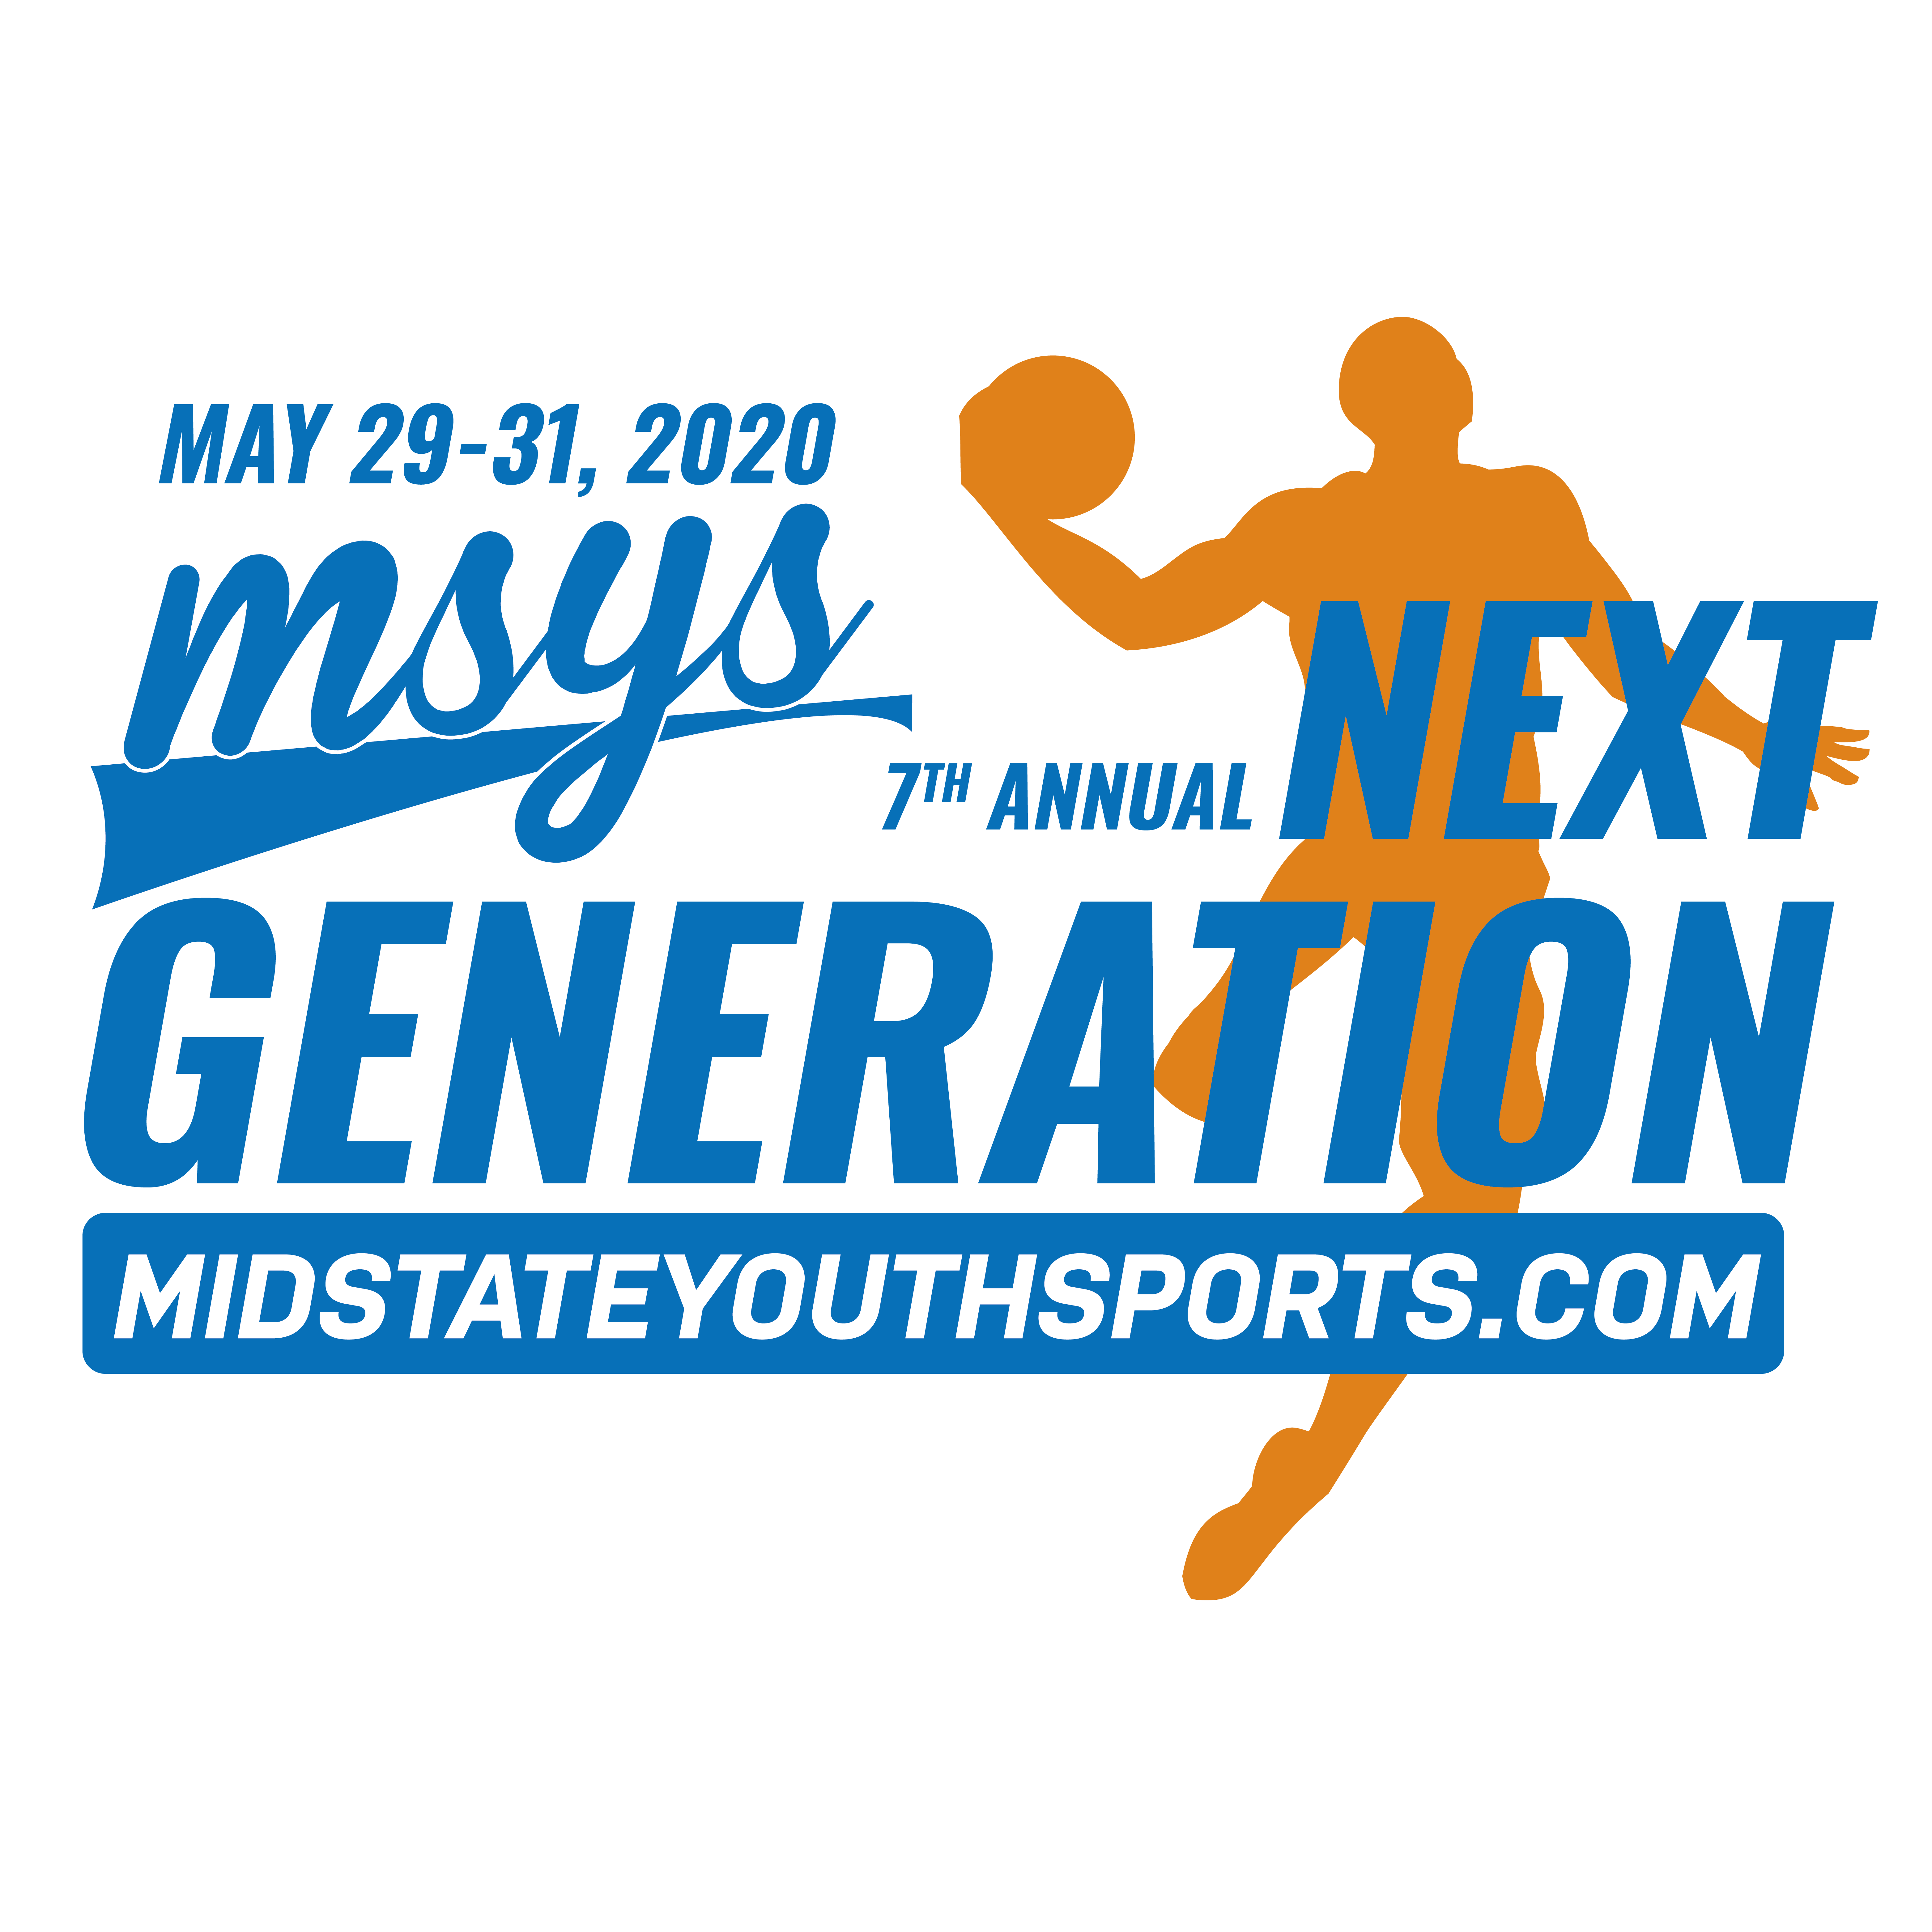 MSYS 7th Annual Next Generation